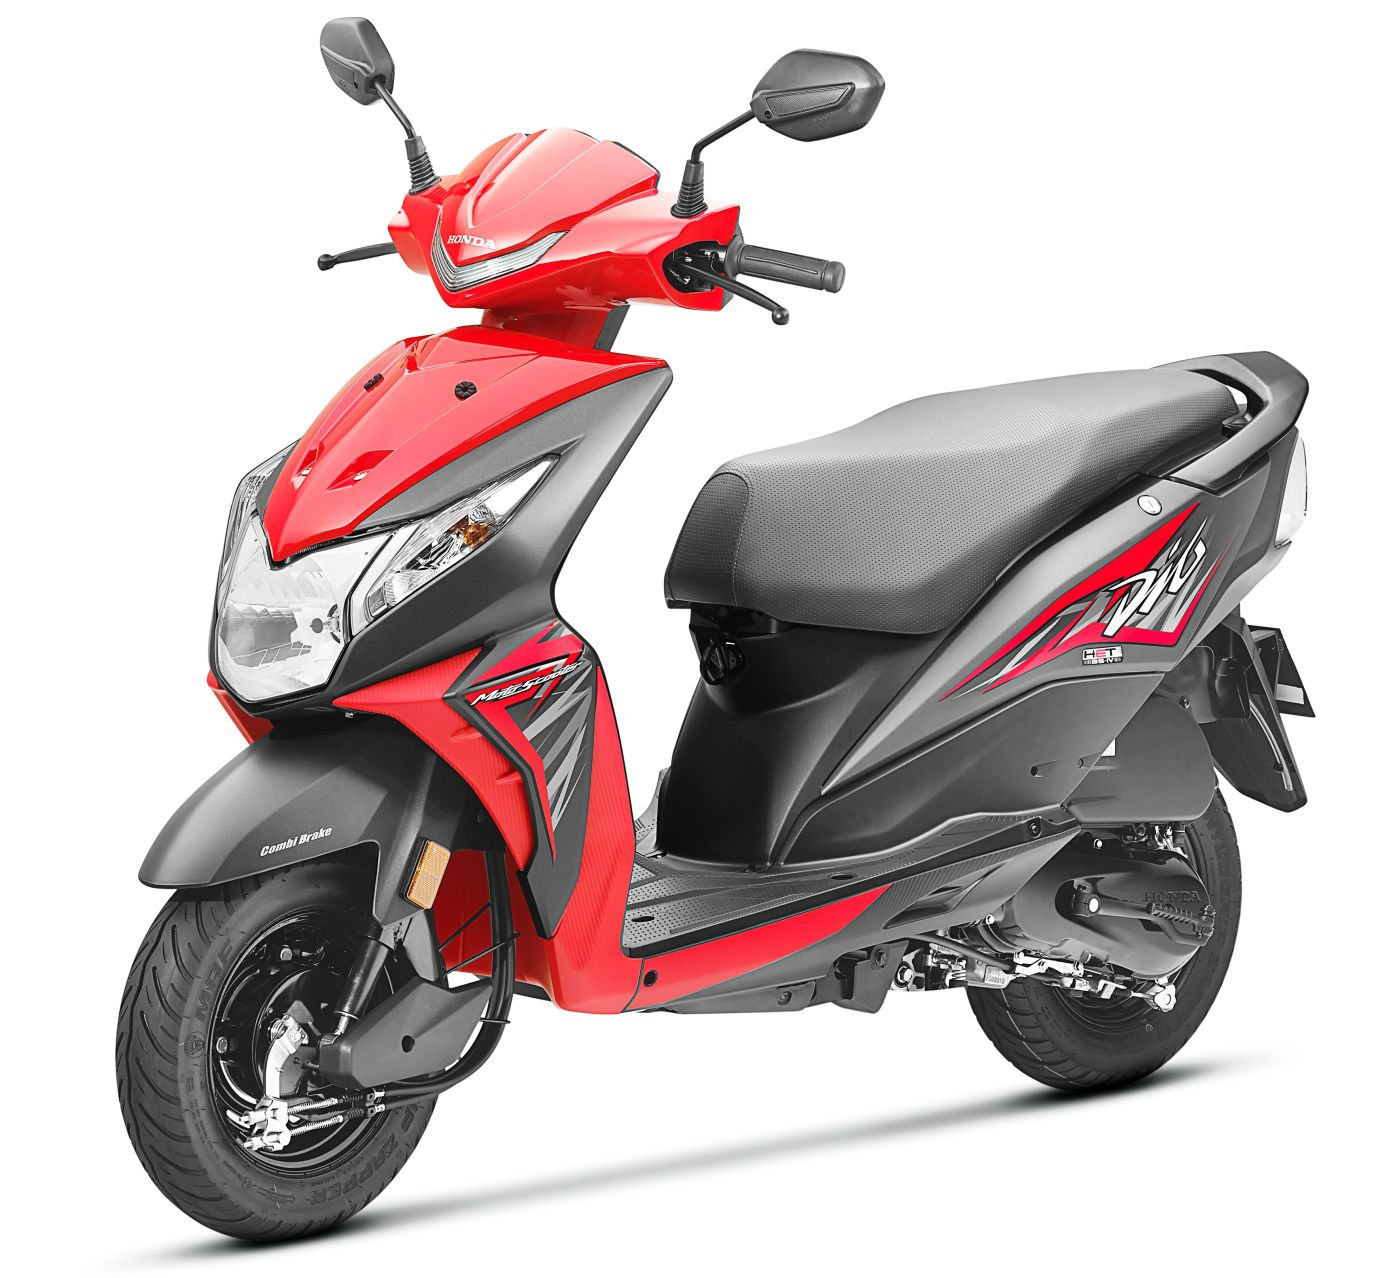 hight resolution of gb tmx frv out honda dio 3 manual stars scooters i rode one briefly yesterday free motorcycle manuals 4 title created date street smart